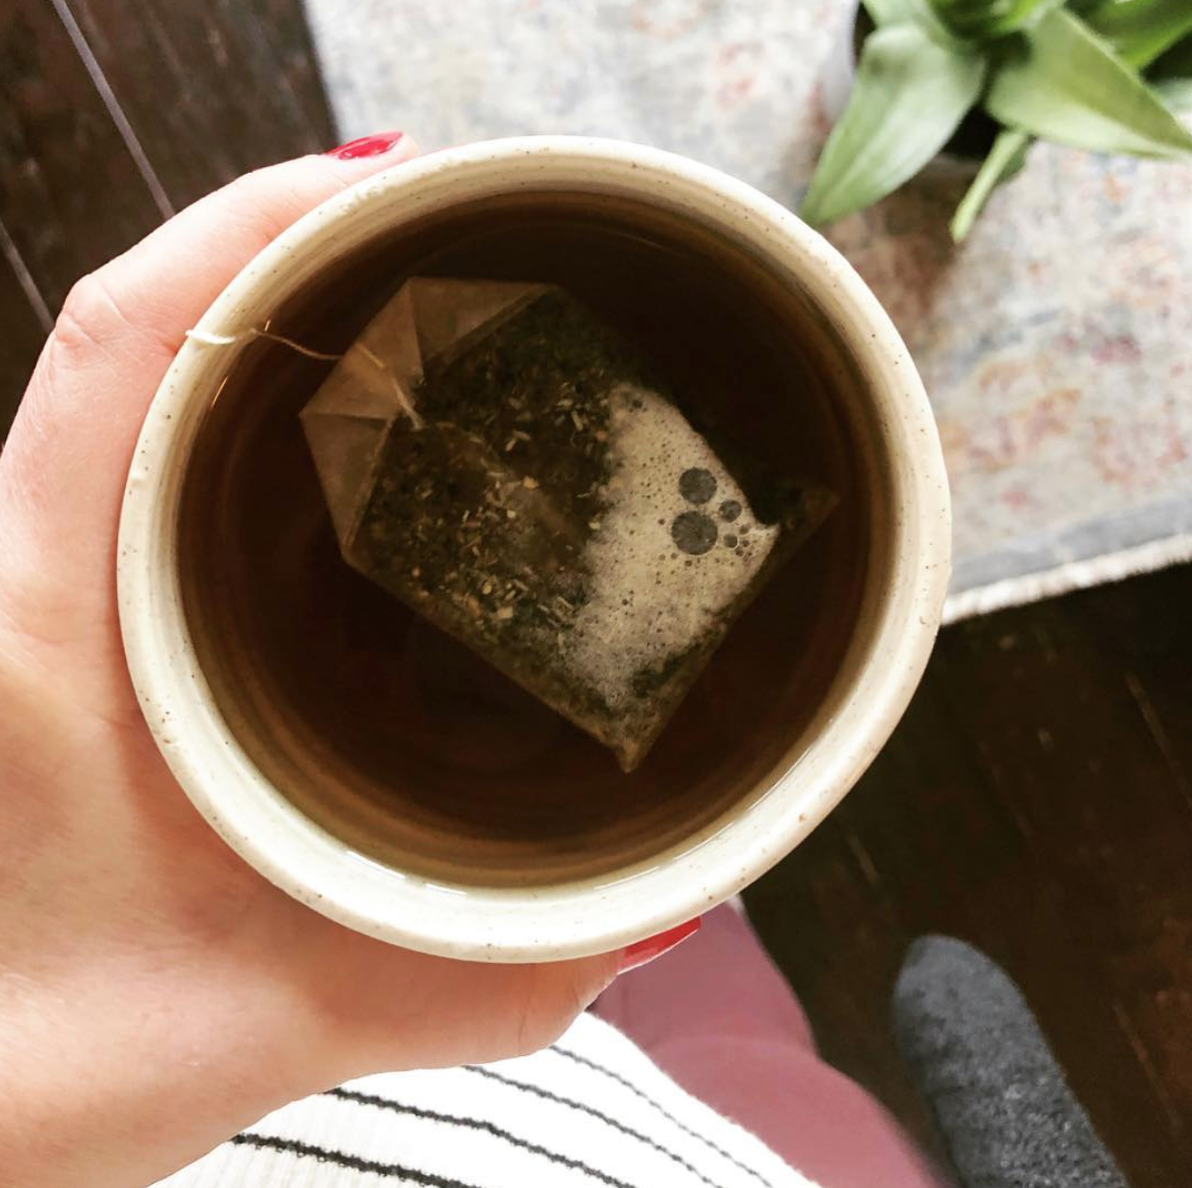 5 Immune Boosting Teas To Try Today | simplerootswellness.com #tea #healthy #immune #immunity #health #wellness #easy #simple #weight #wellness